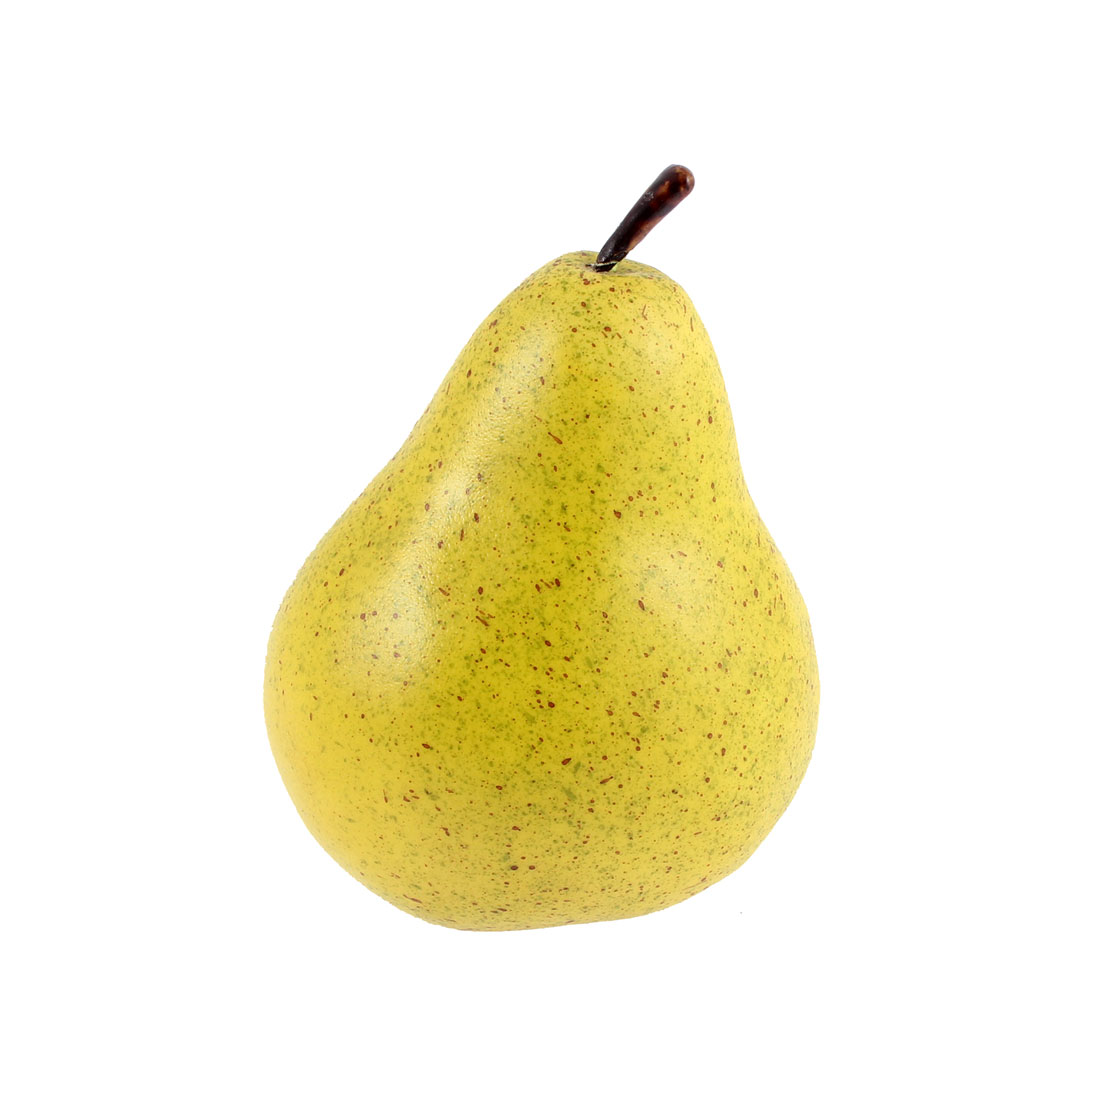 Home Table Desk Display Foam Craft Simulated Pear Ornament